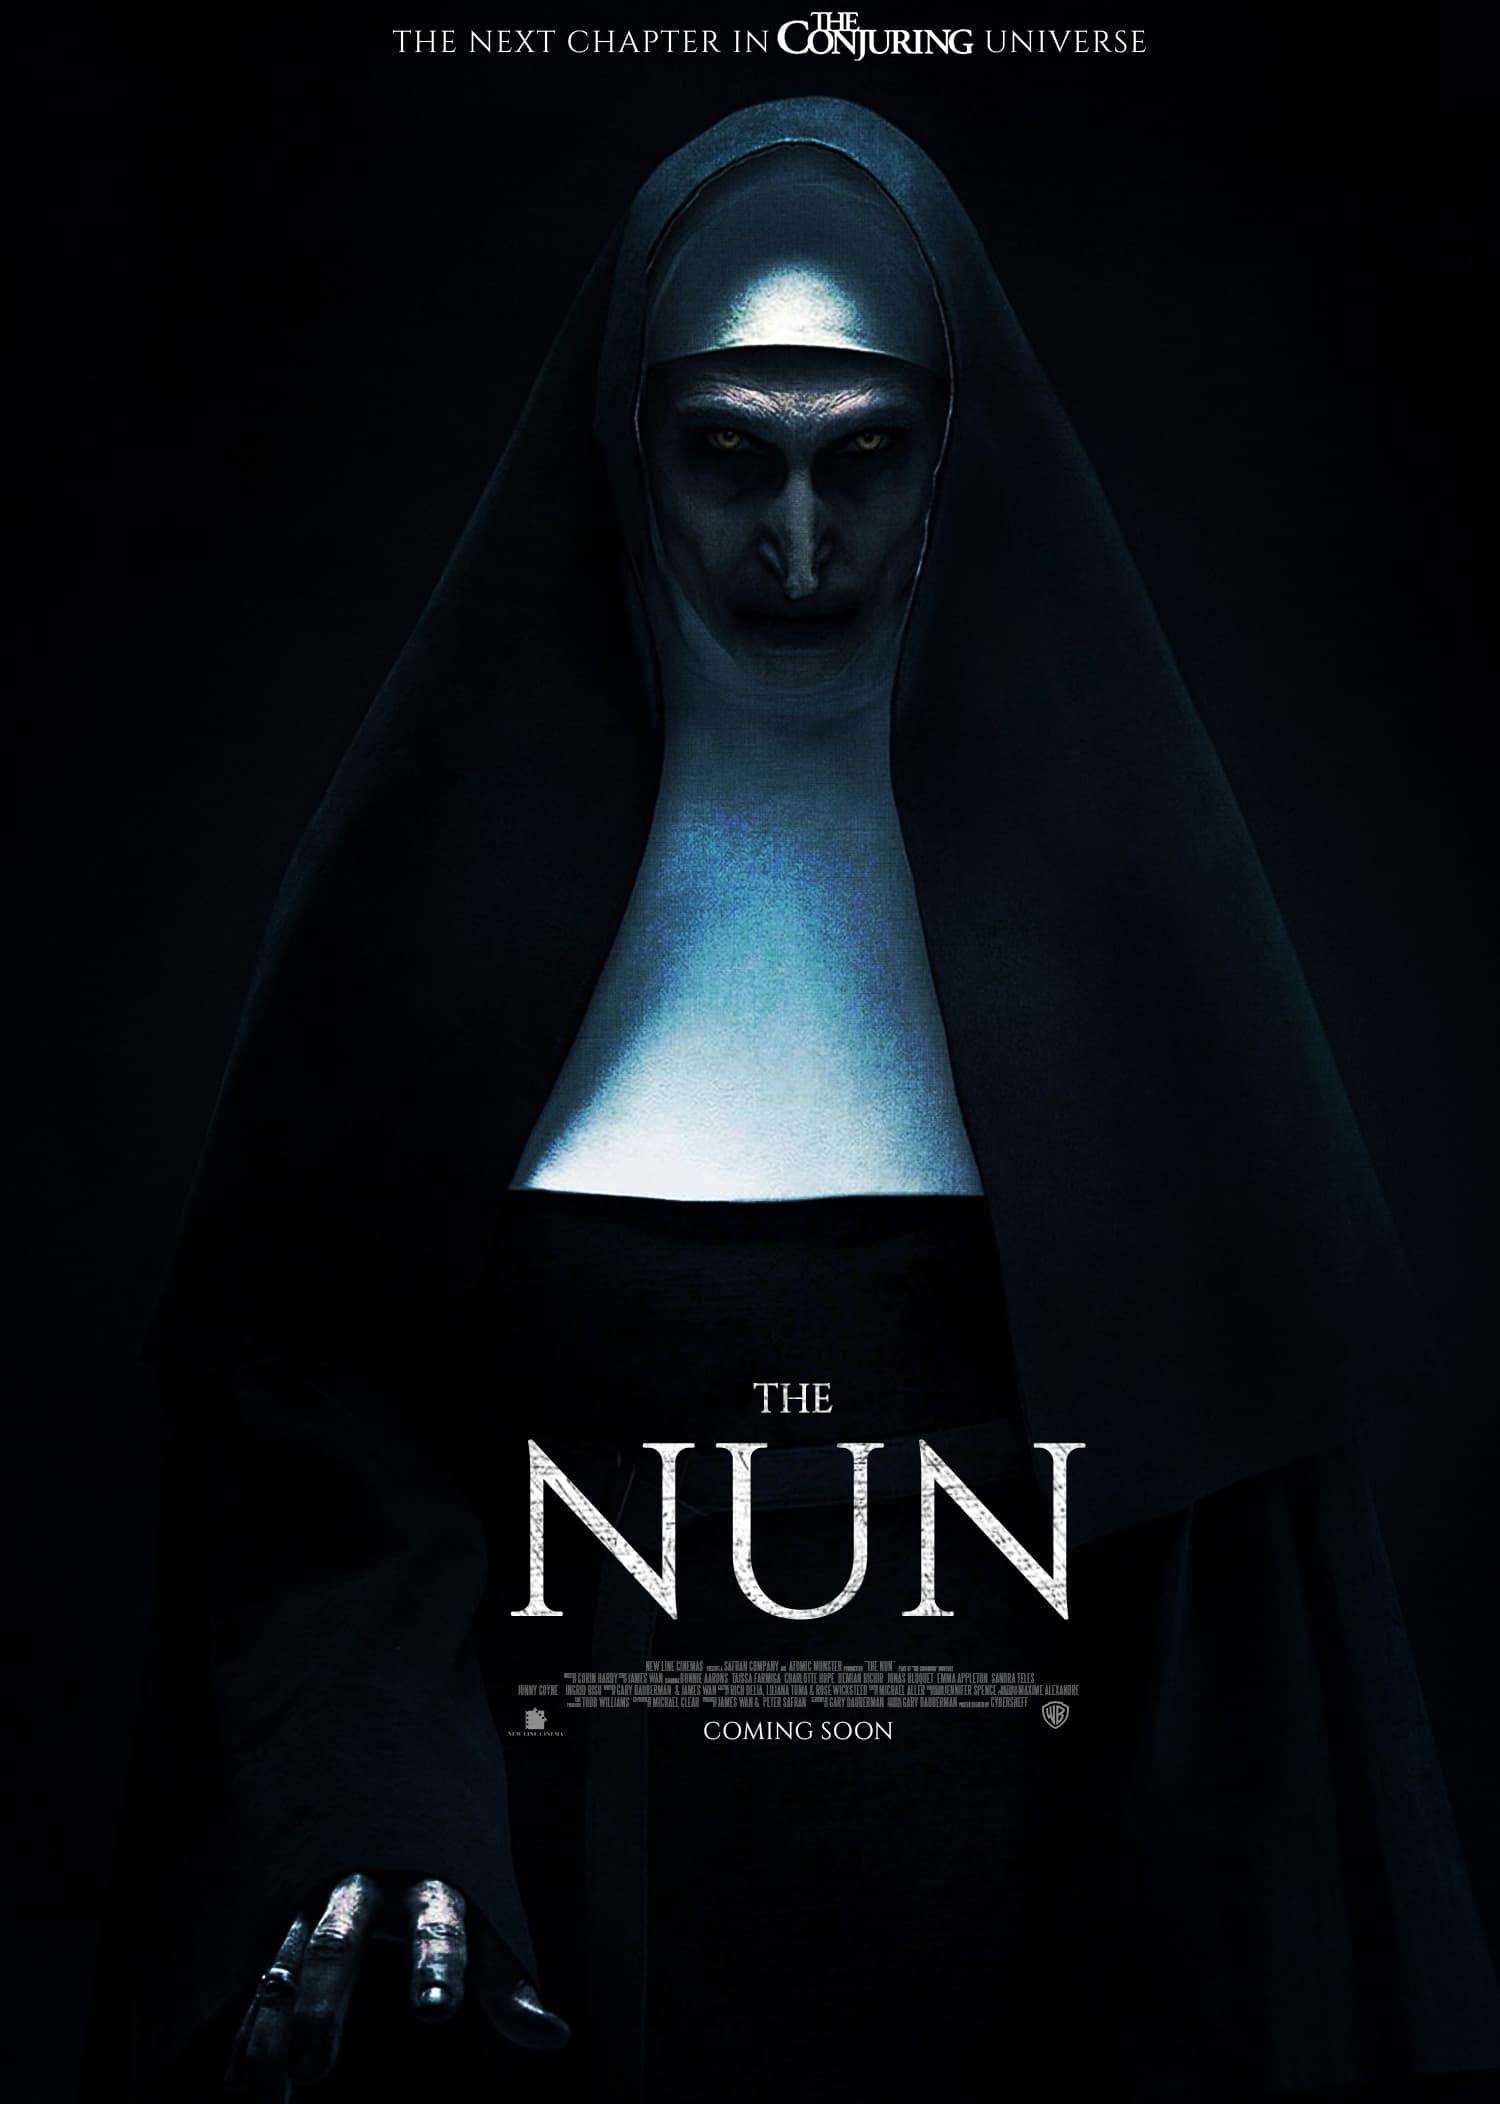 the nun poster 1 - #SDCC18: Director Corin Hardy Talks THE NUN, Growing THE CONJURING Universe, And Spooky Romanian Monasteries